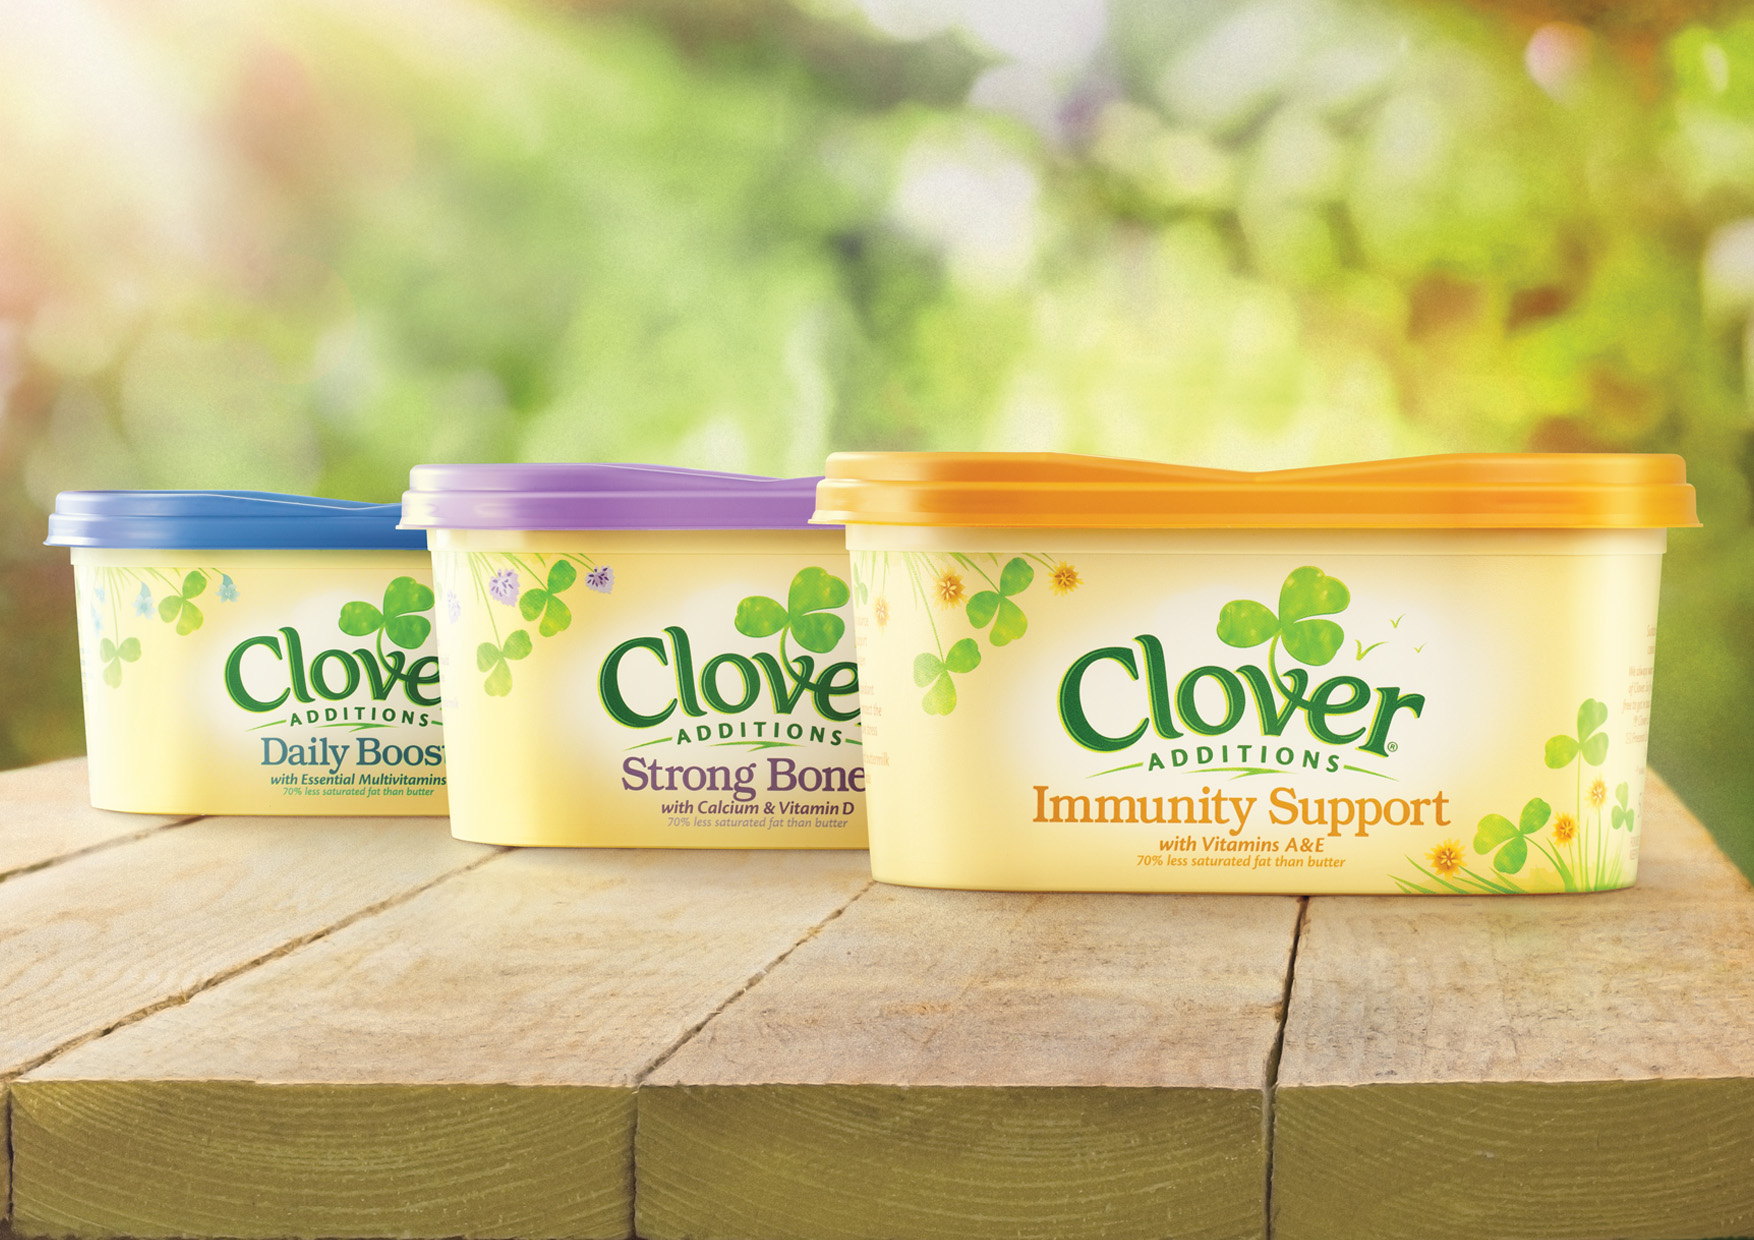 Photo: new Clover visual identity and packaging